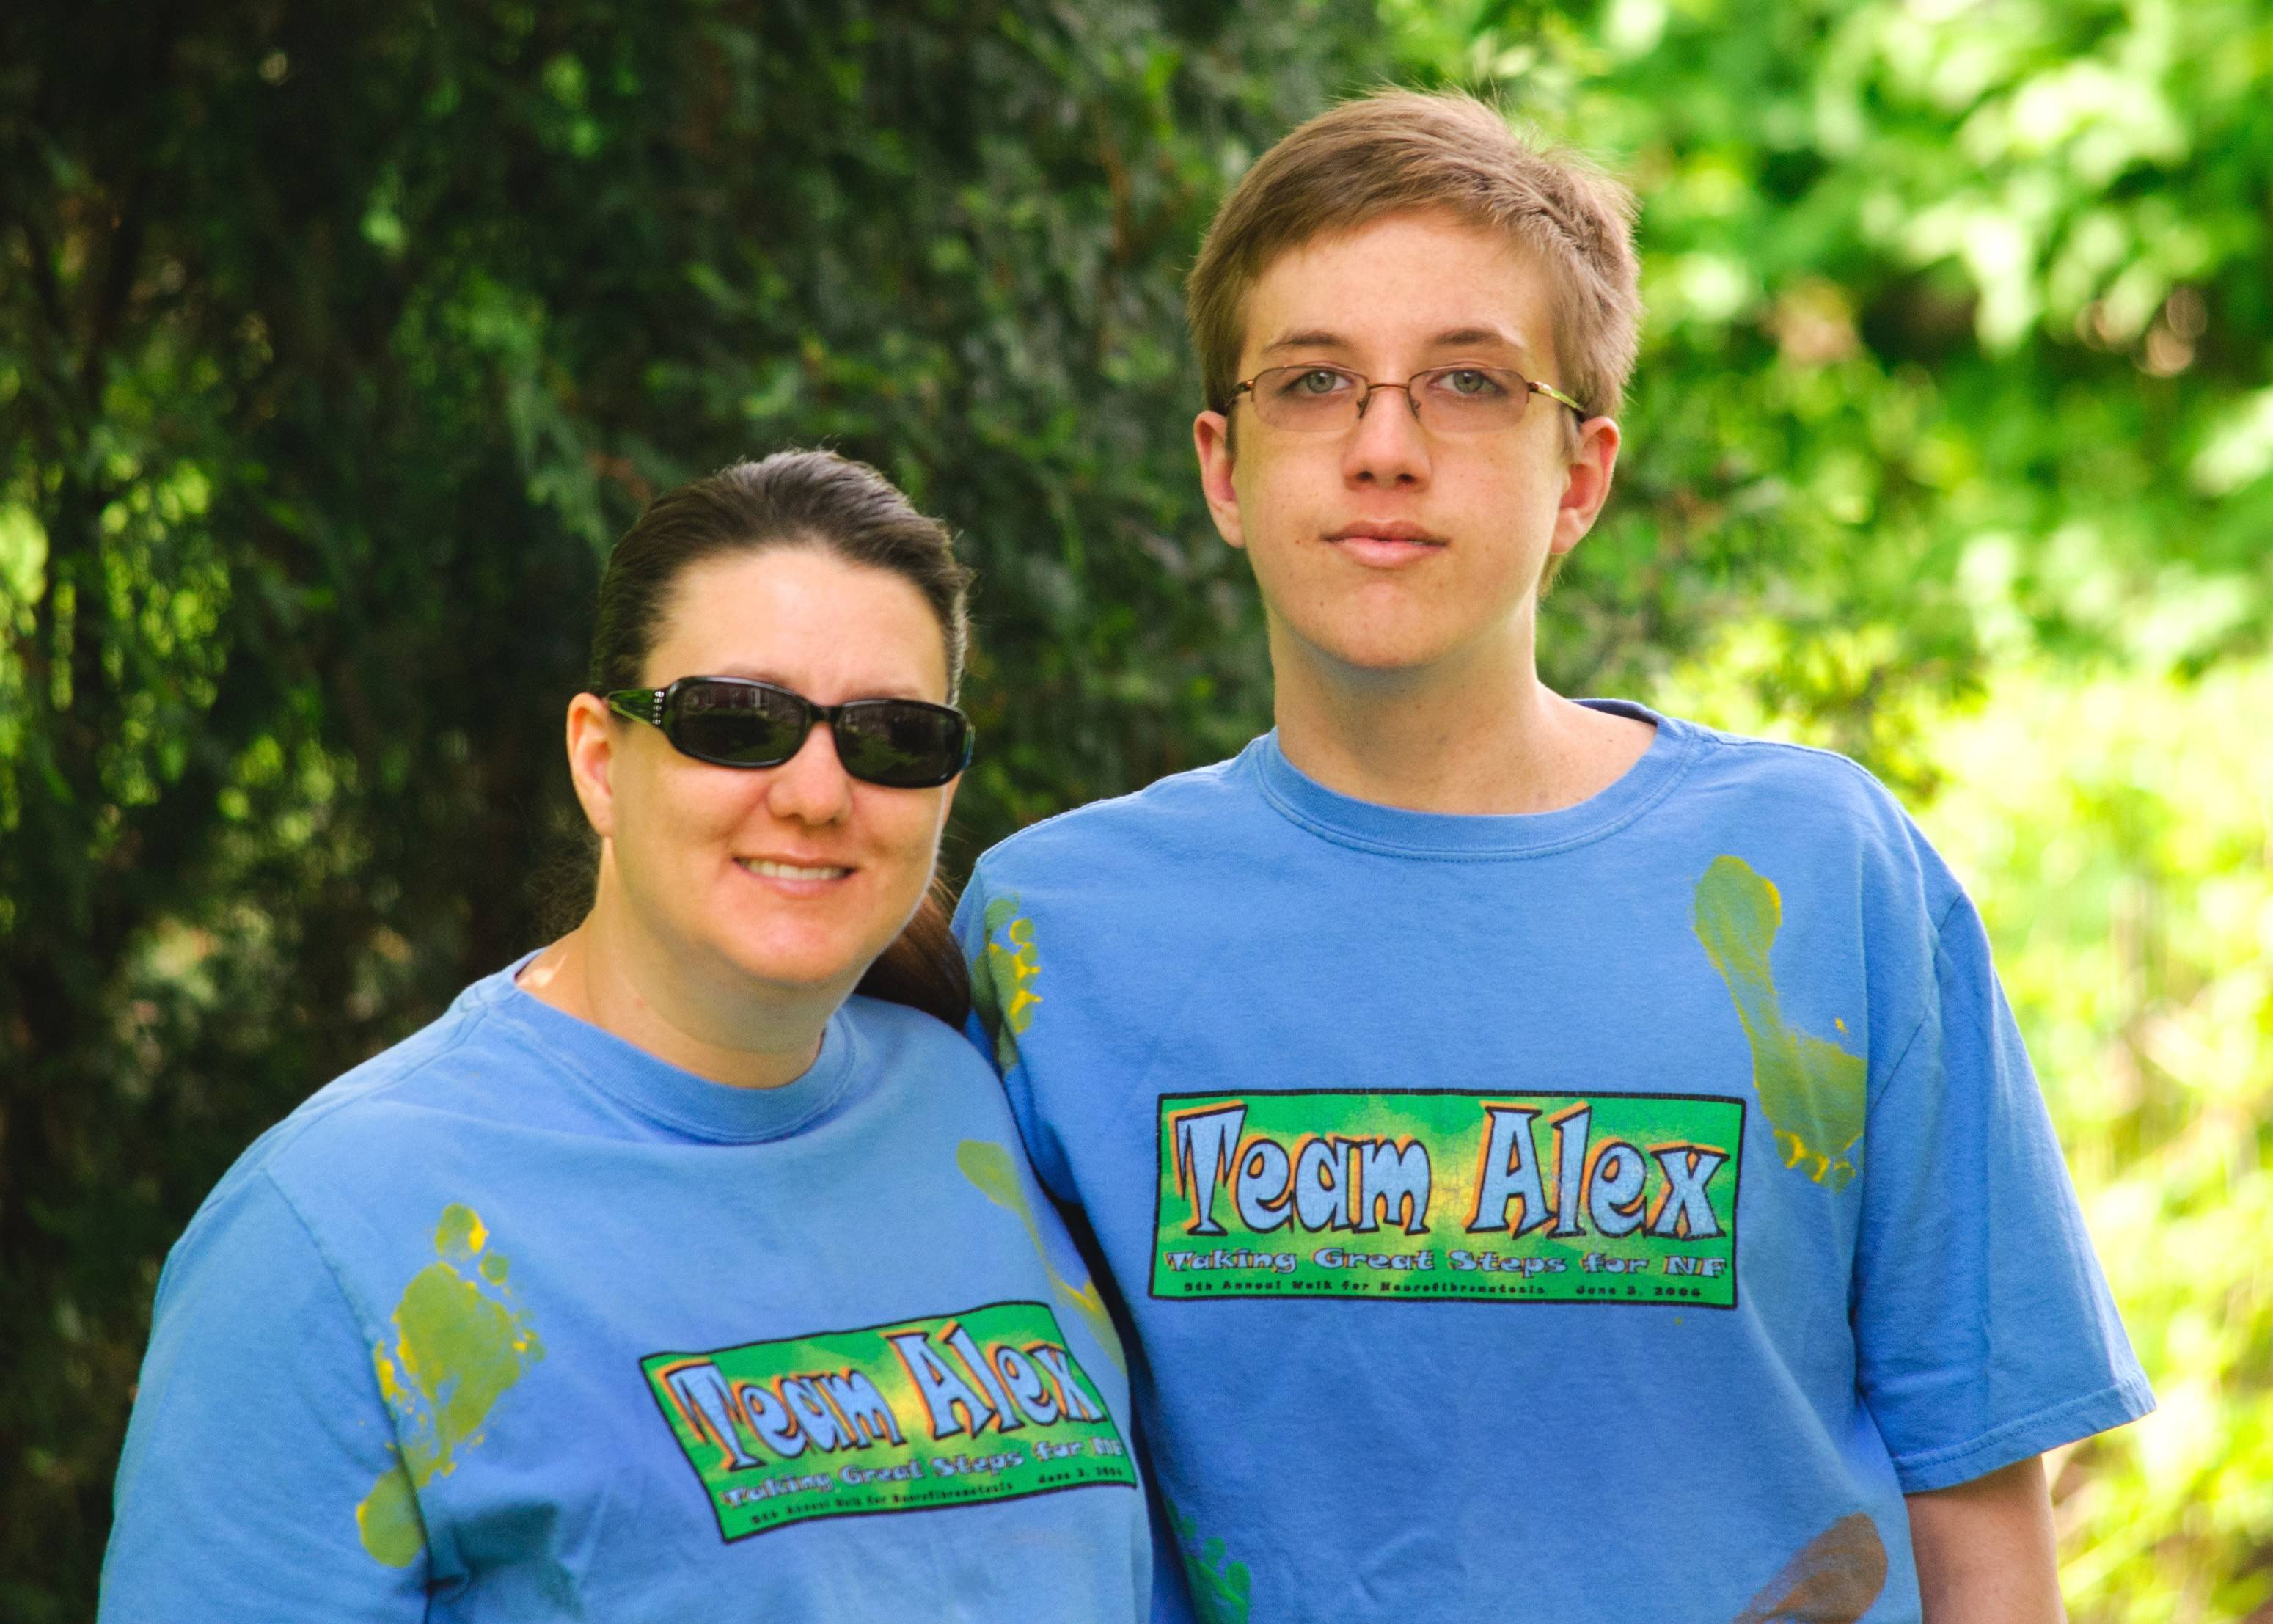 Sheri Scheidt of Wheaton will walk in Great Steps for NF to help fund research into neurofibromatosis. Her son, Alex, 16, has the disorder.